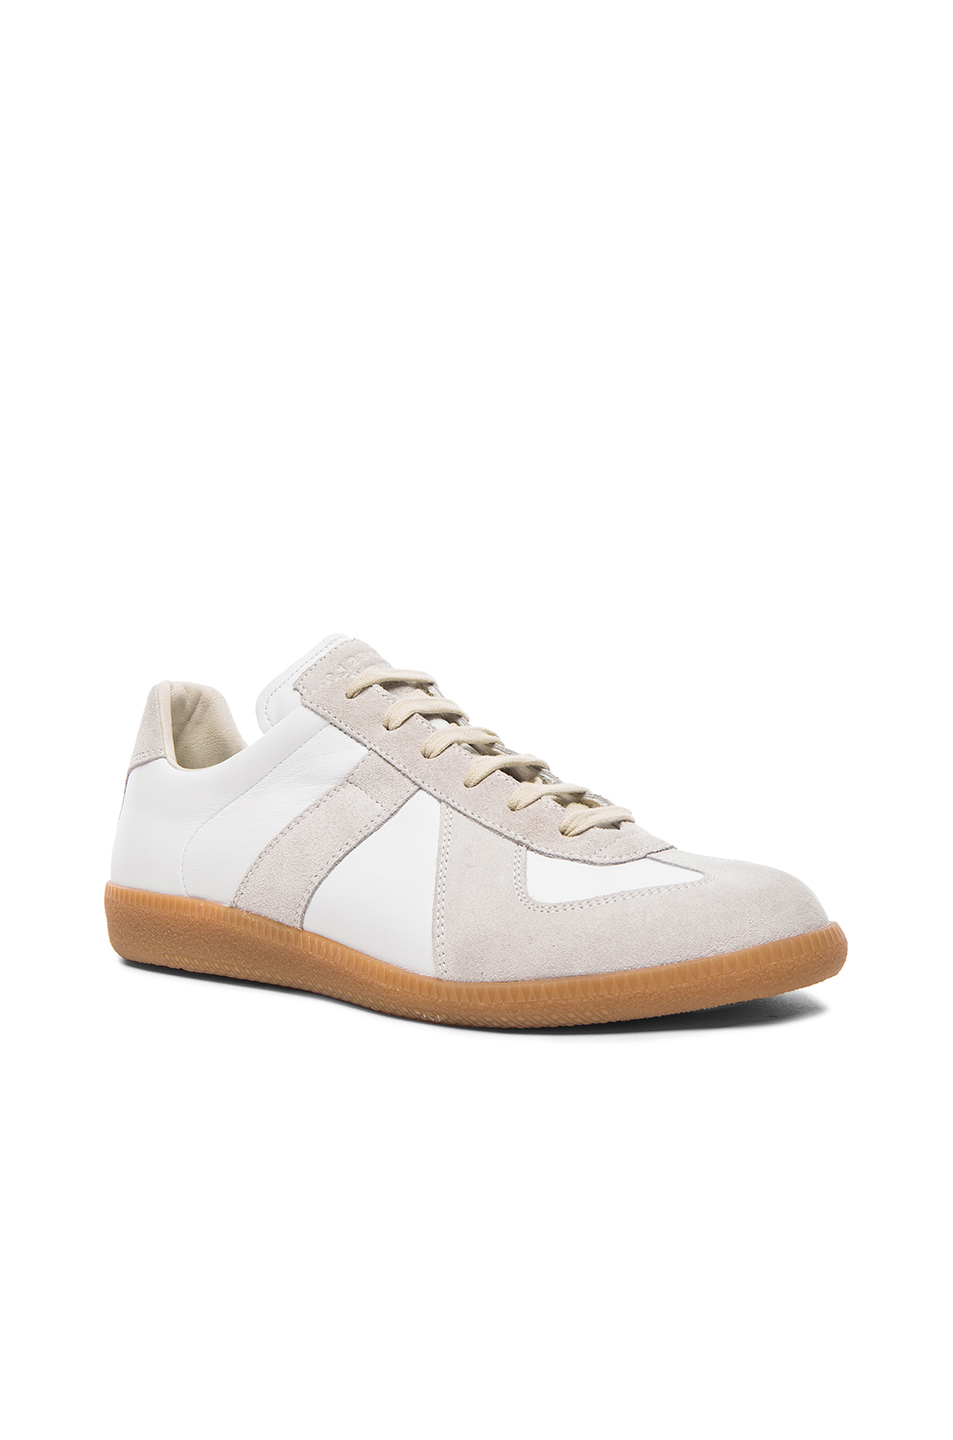 Maison Margiela Replica Low Top Sneaker in White